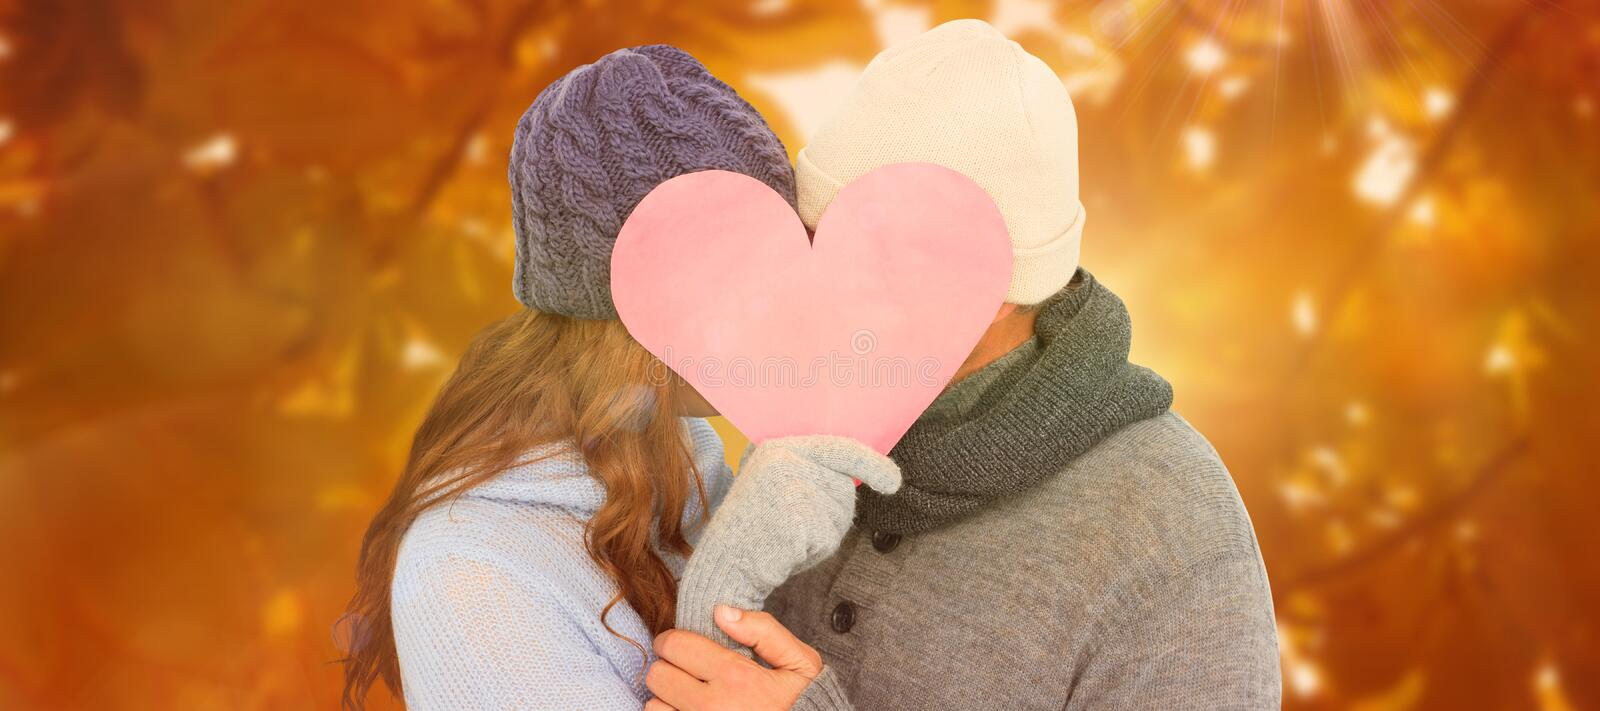 Composite image of couple in warm clothing holding heart. Couple in warm clothing holding heart against autumn scene royalty free stock images